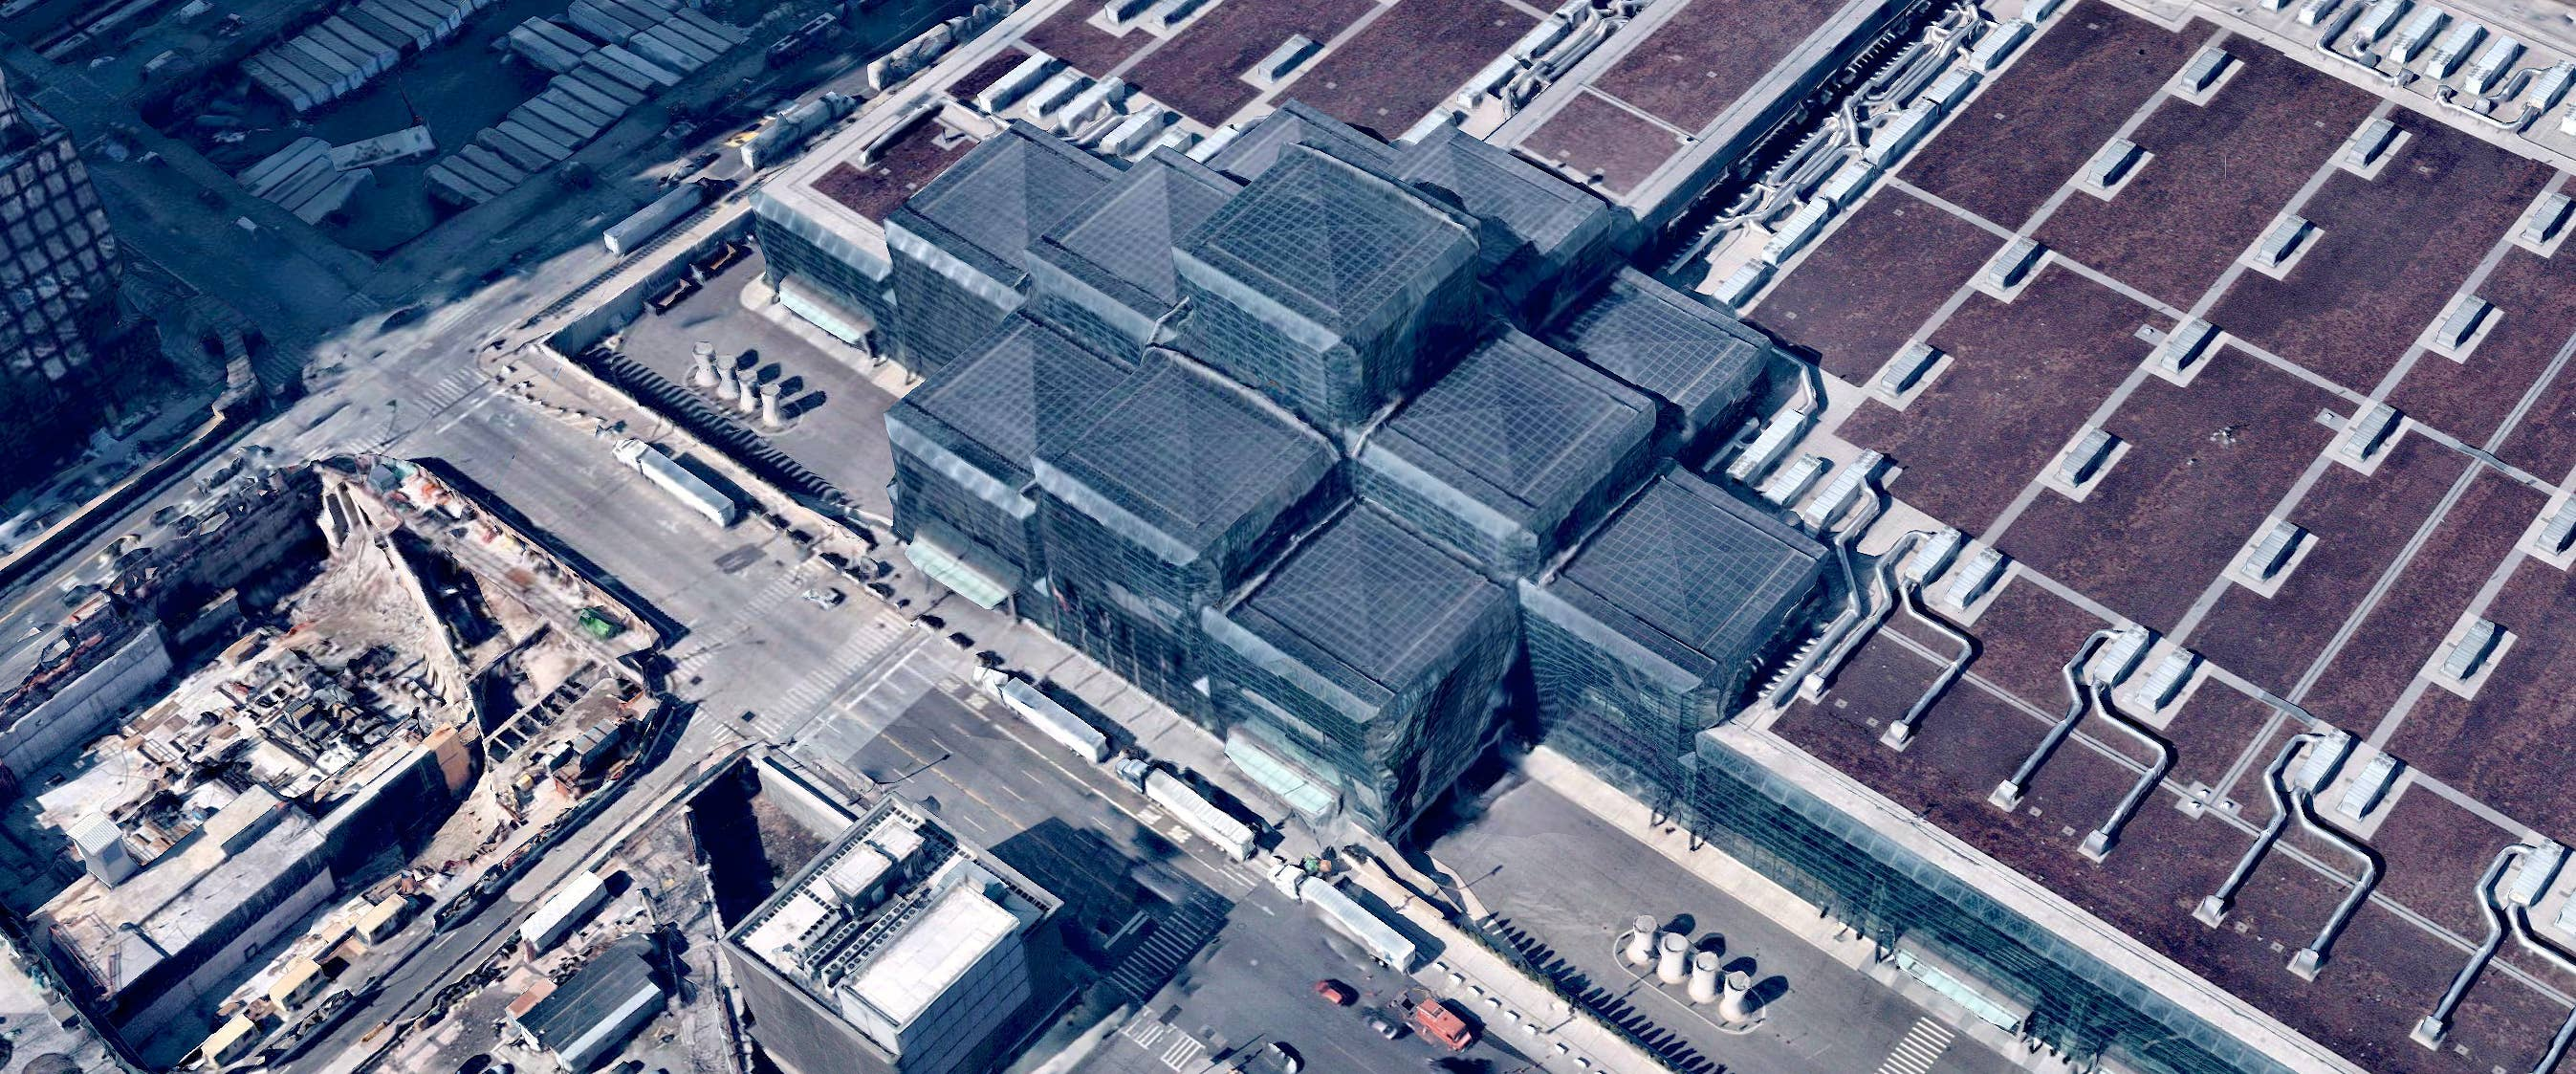 3D aerial visualization of Javits Convention Center in New York City, NY - 24 March 2019